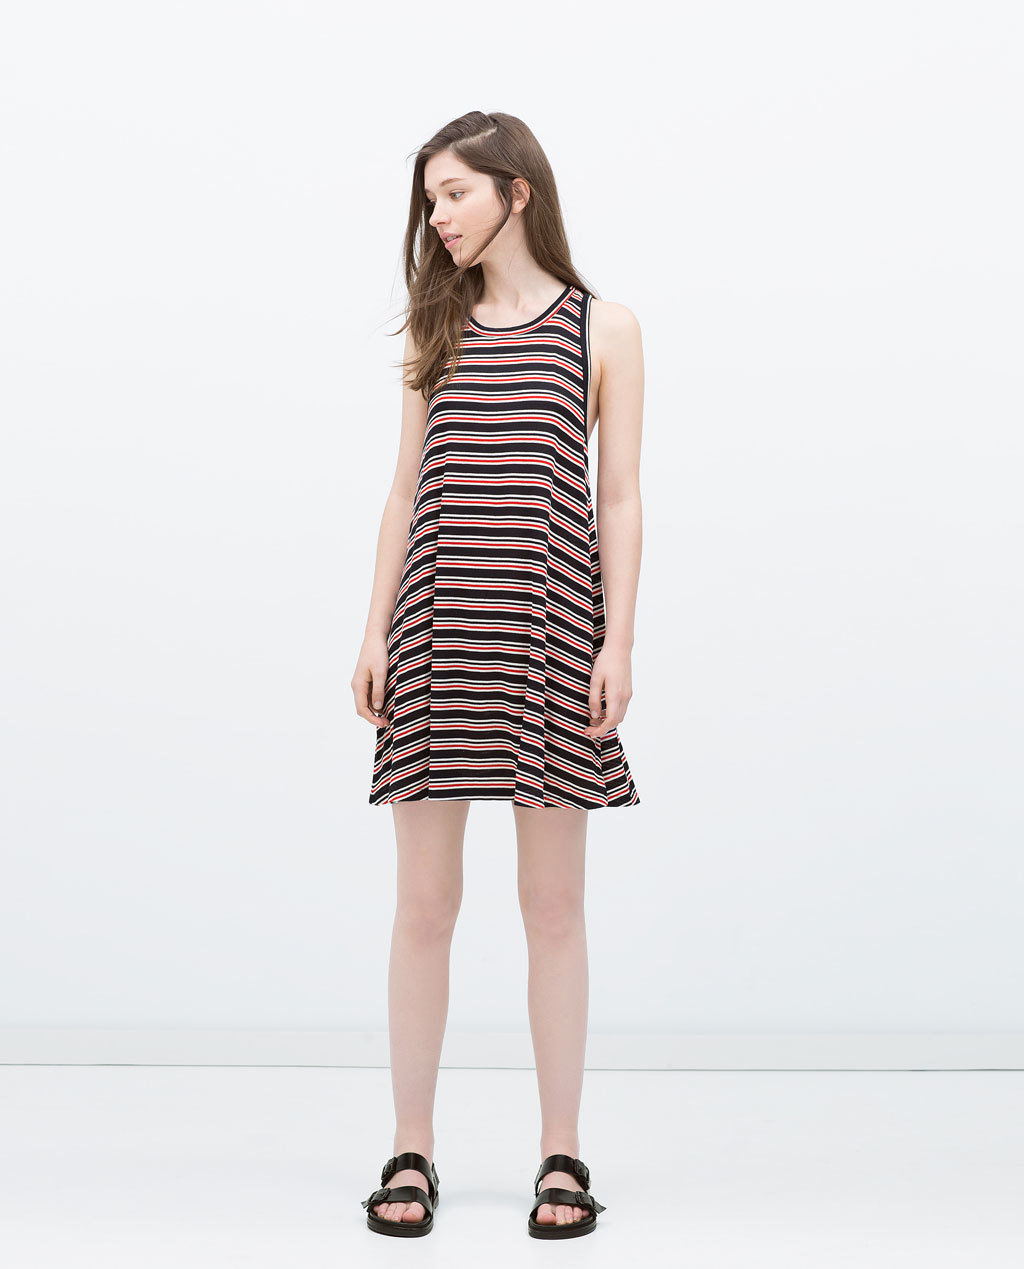 Shift Dress - style: trapeze; fit: loose; pattern: horizontal stripes; sleeve style: sleeveless; predominant colour: true red; secondary colour: black; occasions: casual; length: just above the knee; neckline: scoop; sleeve length: sleeveless; pattern type: fabric; pattern size: standard; texture group: jersey - stretchy/drapey; fibres: viscose/rayon - mix; season: s/s 2015; multicoloured: multicoloured; wardrobe: highlight